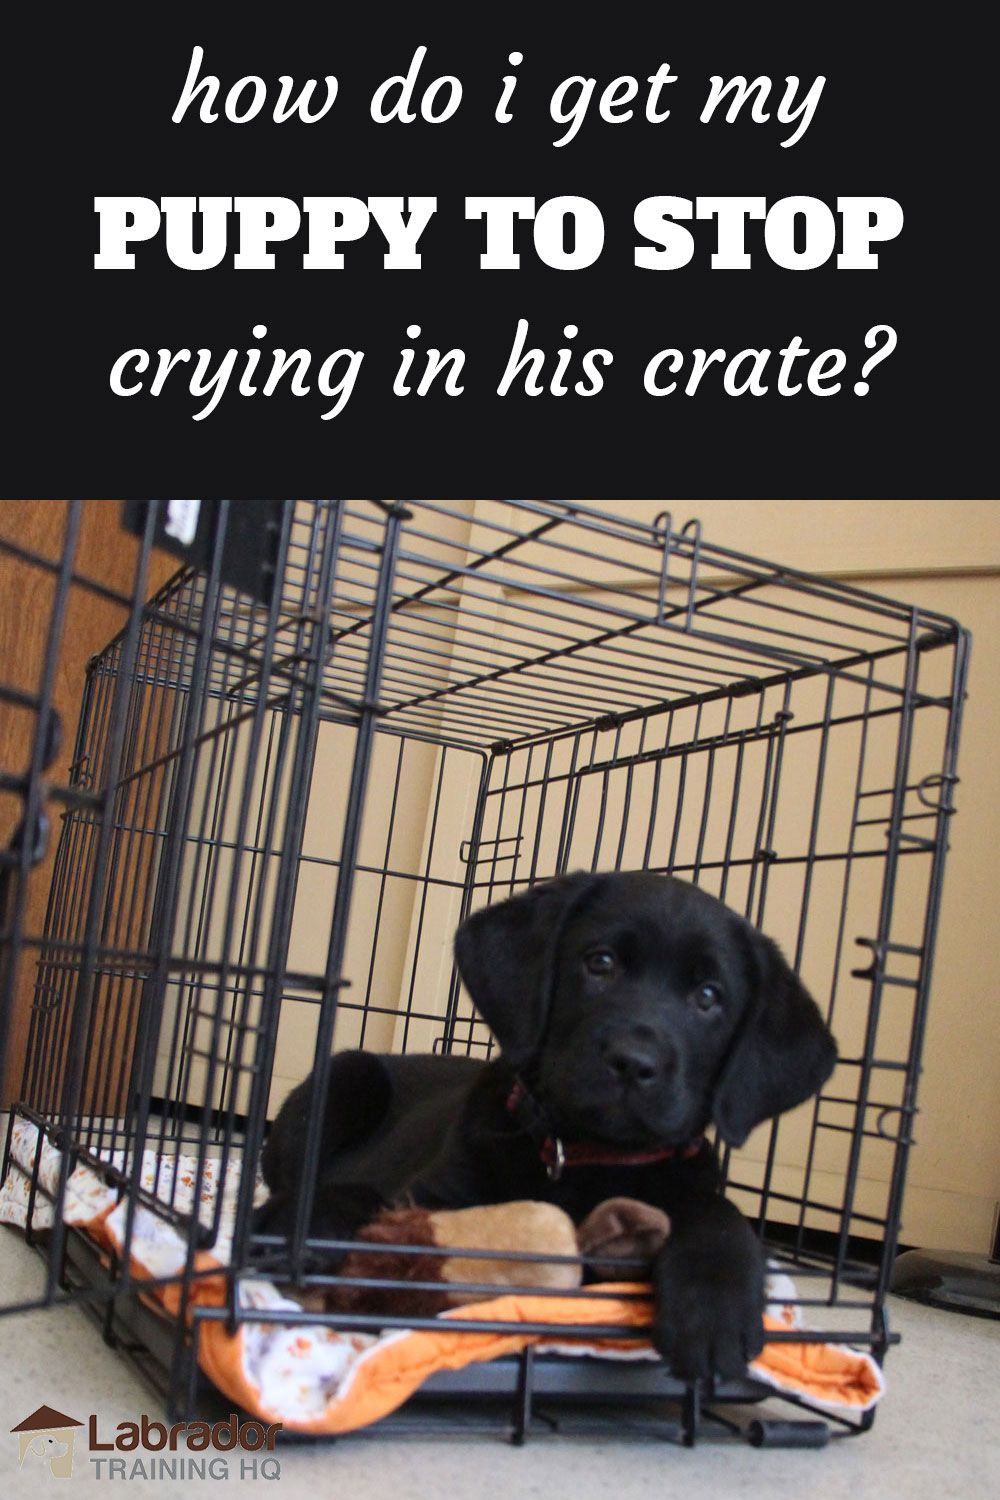 How Do I Get My Puppy To Stop Crying In His Crate At Night Dog Crying Crate Training Puppy Puppies